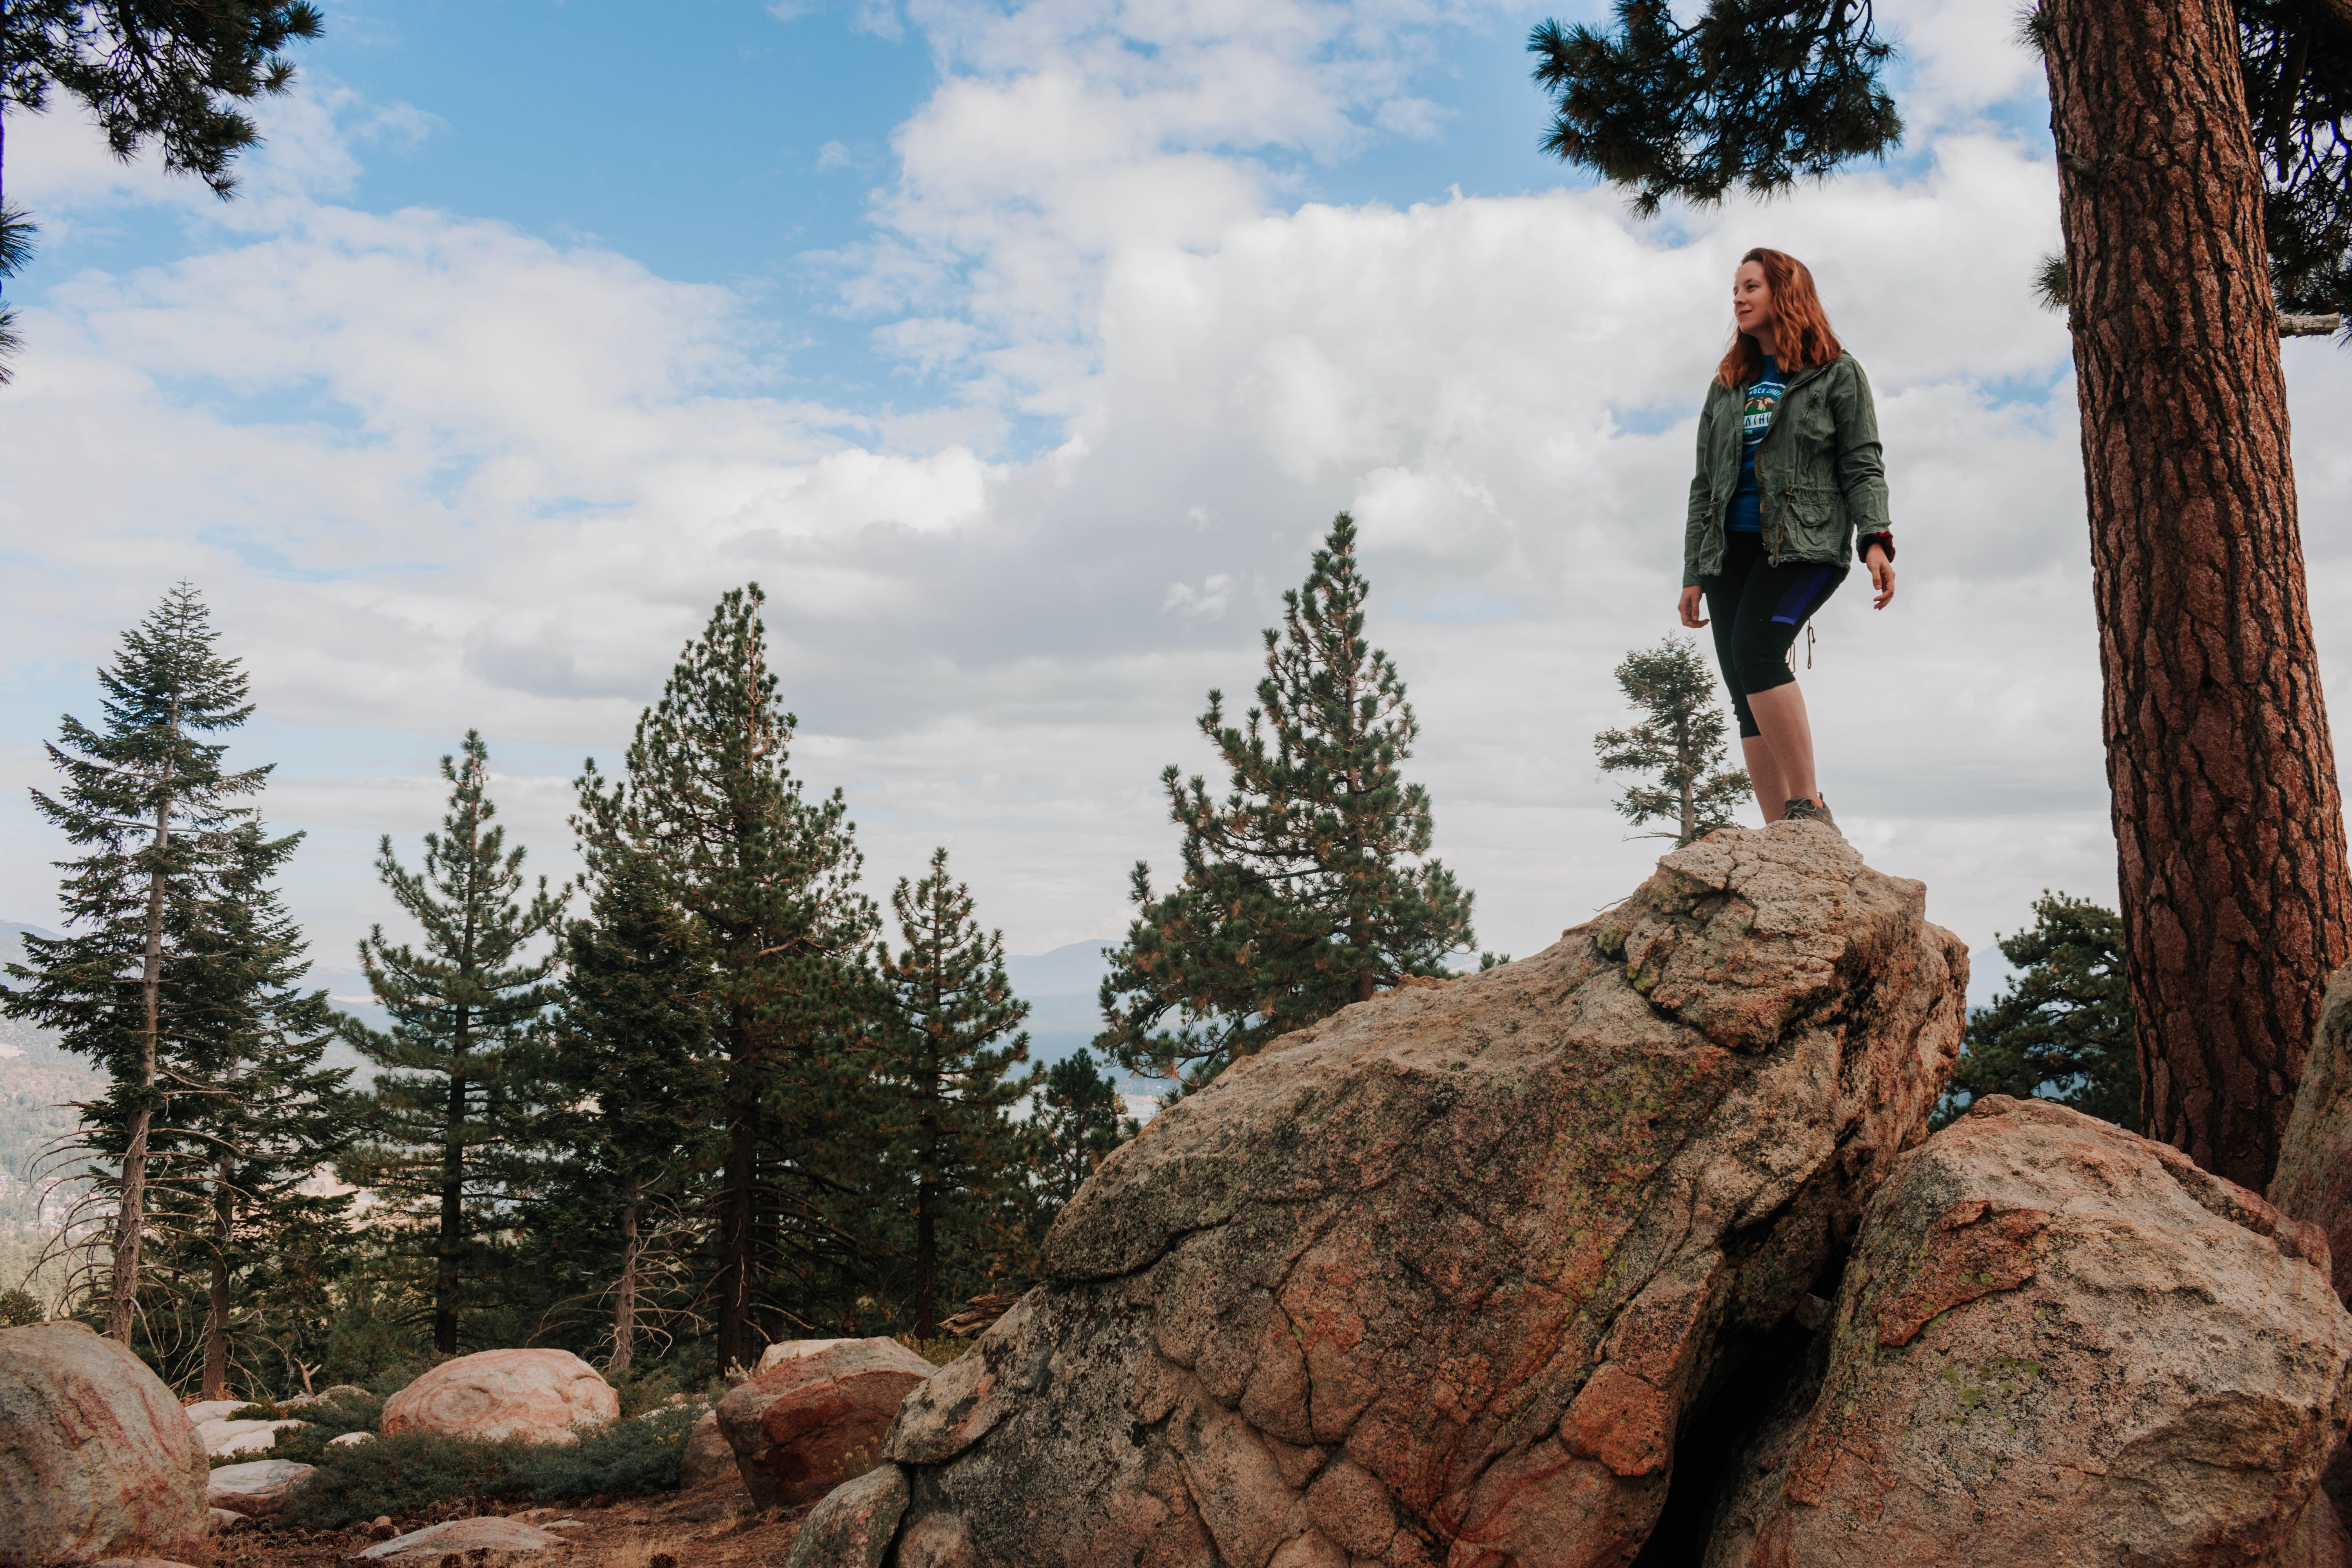 Hiker standing on a boulder surrounded by pine trees at Grays Peak in Big Bear